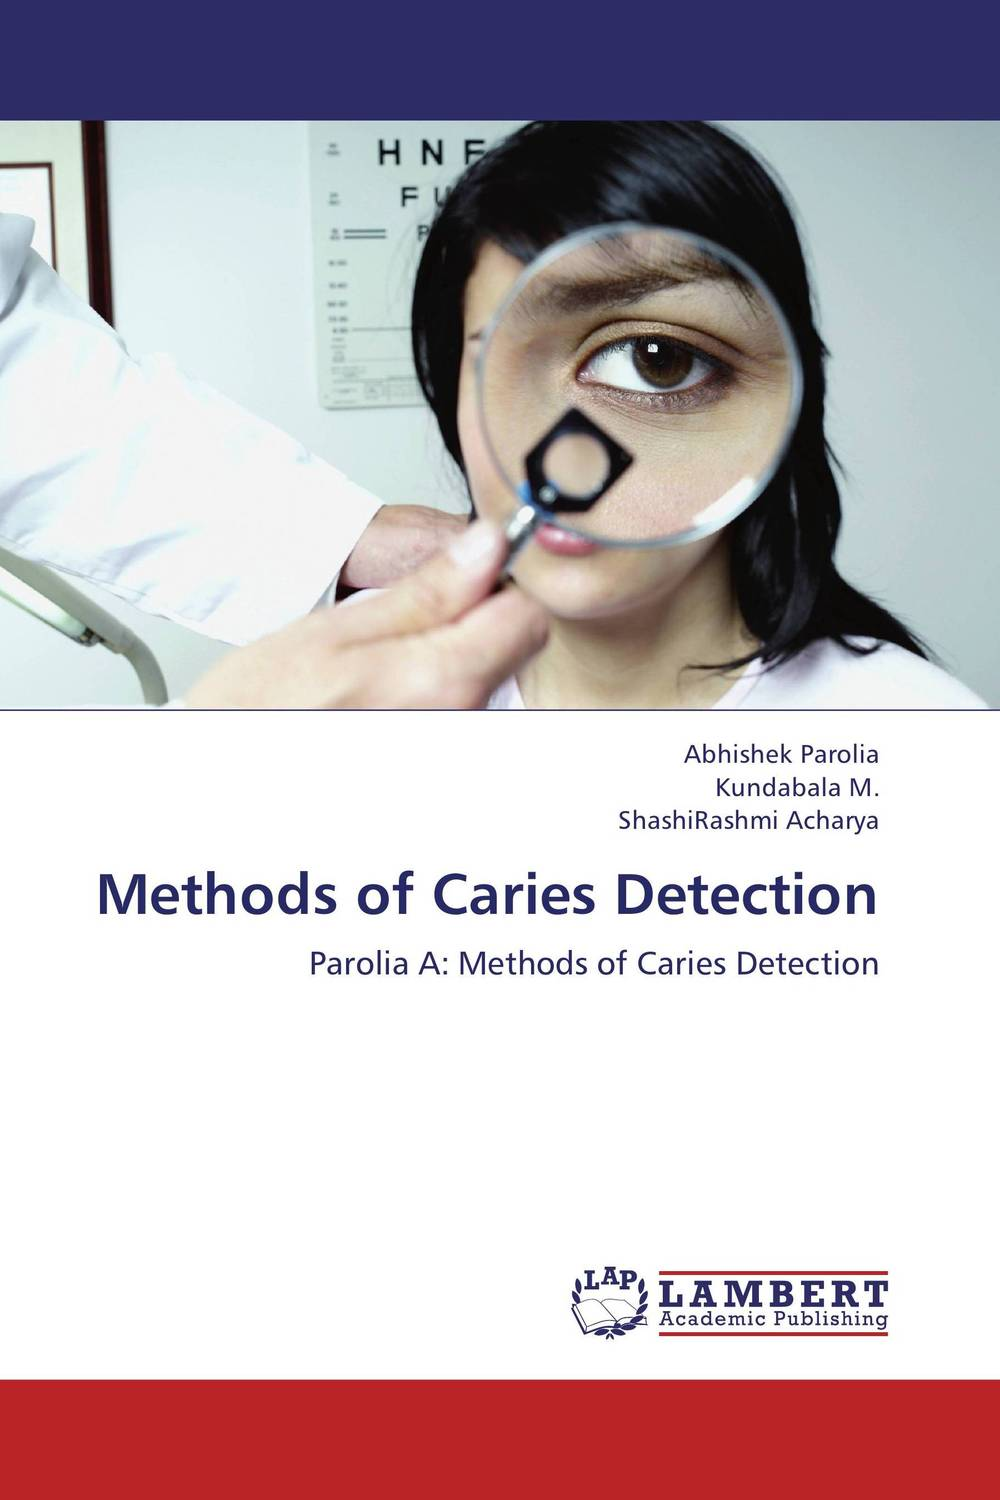 Methods of Caries Detection belousov a security features of banknotes and other documents methods of authentication manual денежные билеты бланки ценных бумаг и документов